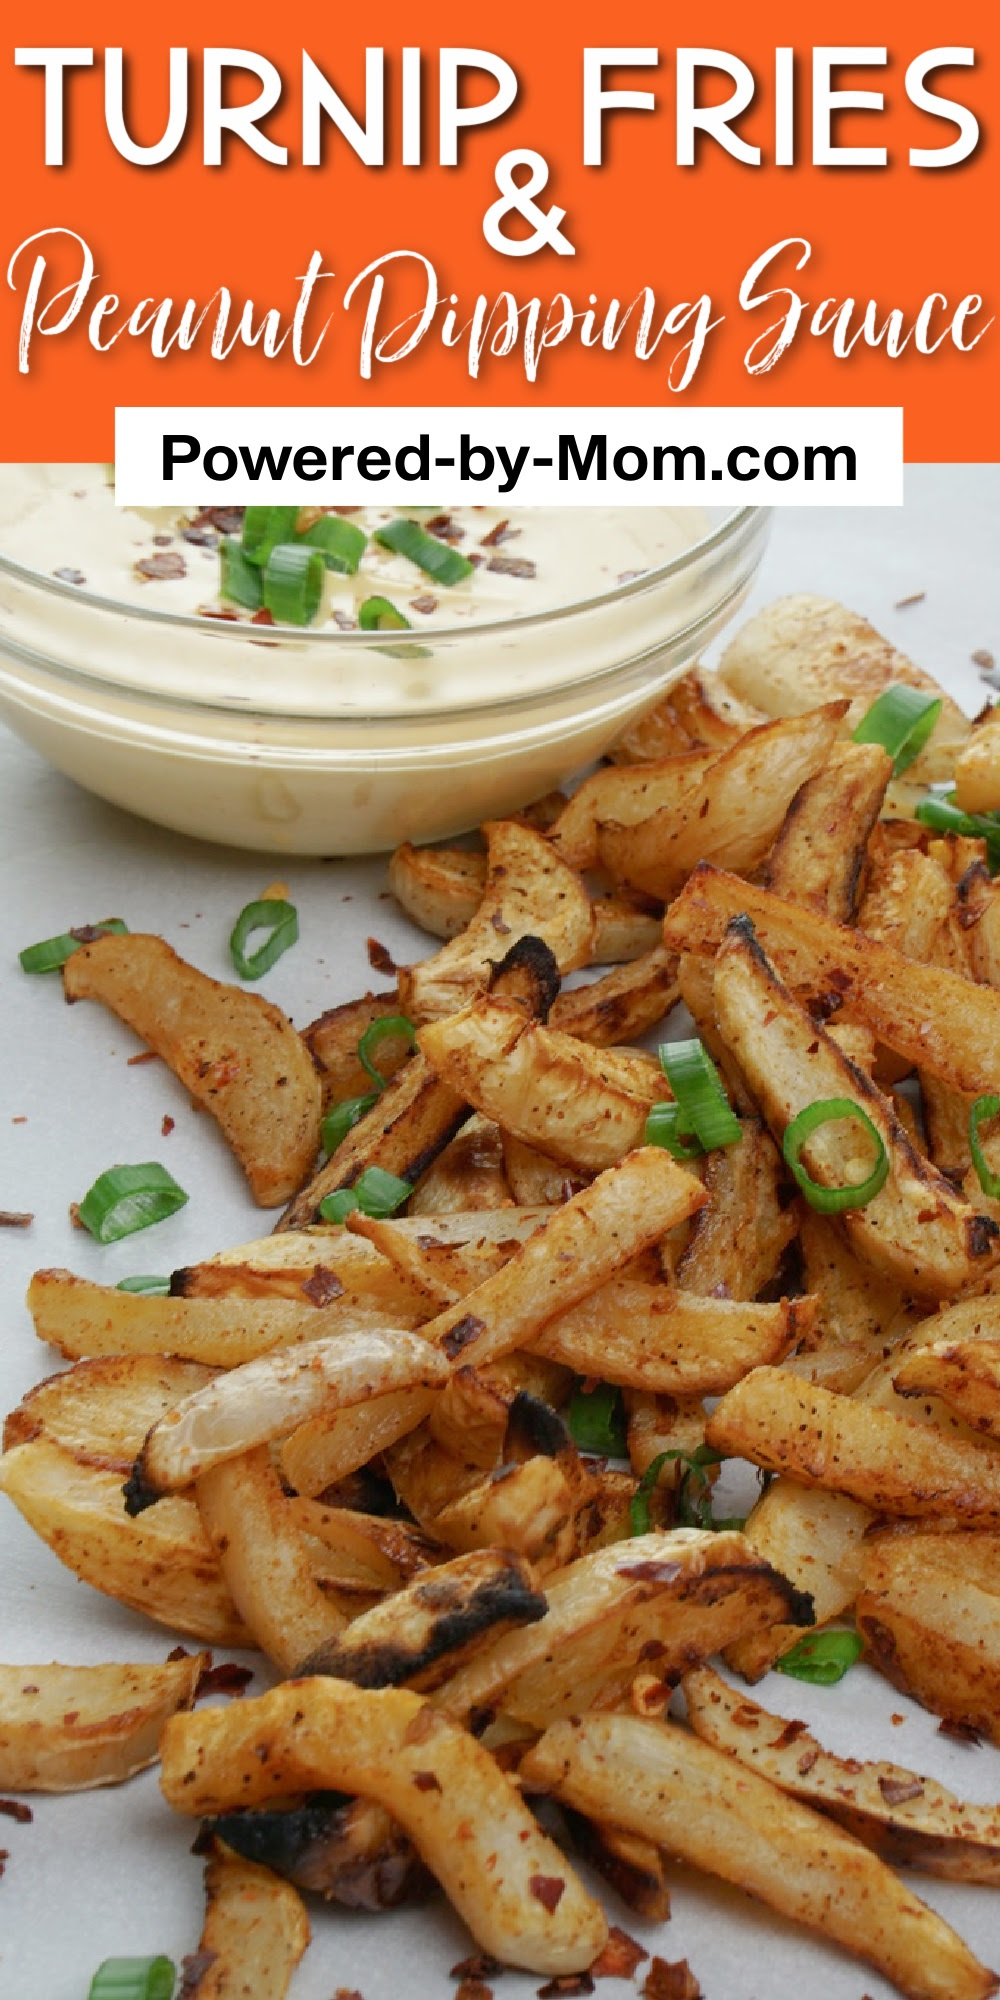 Want to try something a bit different? Check out this turnip fries with a spicy peanut dipping sauce recipe for a unique twist on turnips.